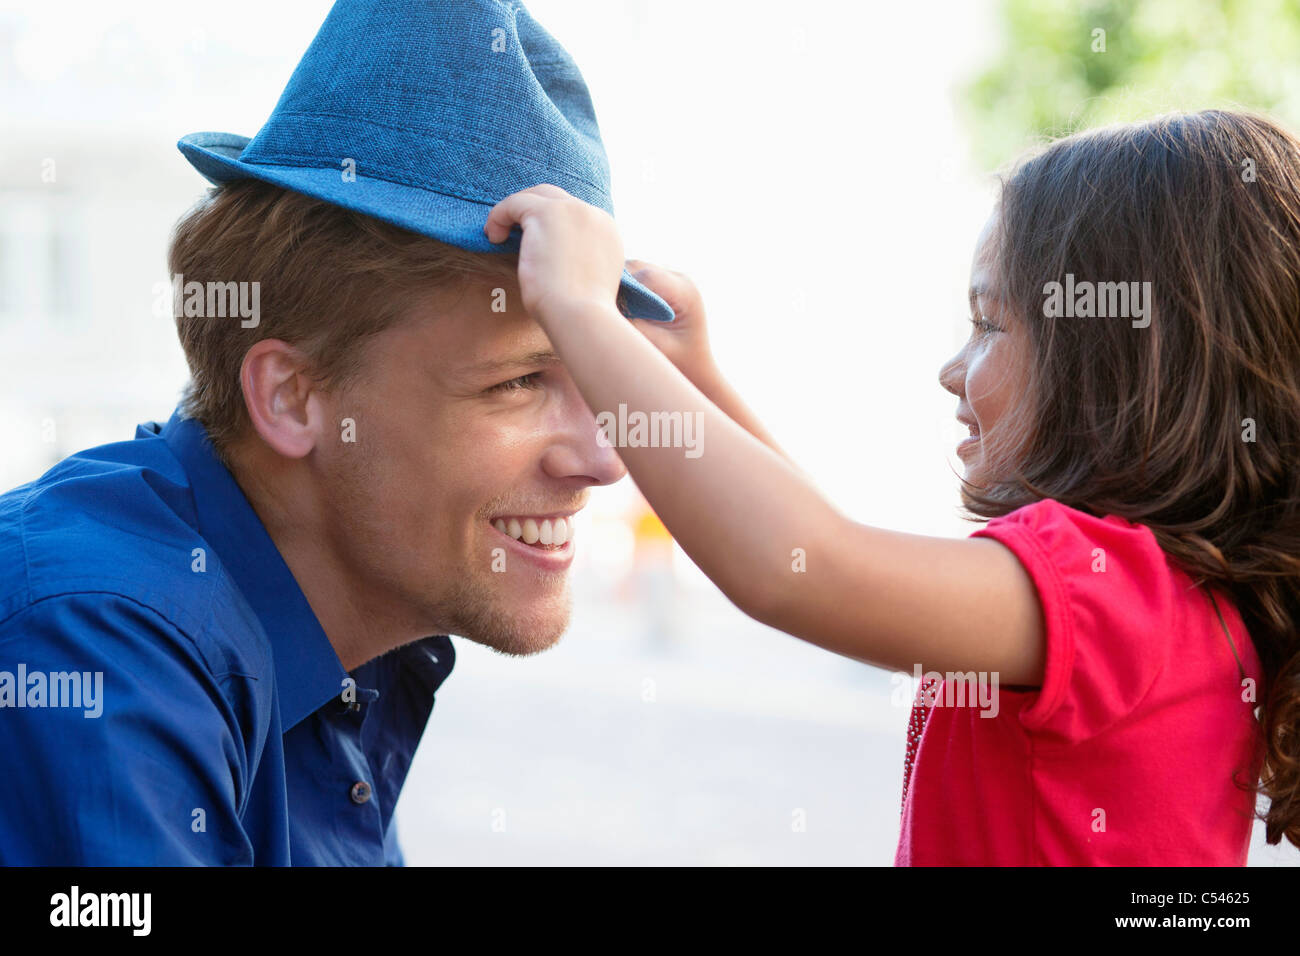 c92b4b31 Putting On A Hat Stock Photos & Putting On A Hat Stock Images - Alamy